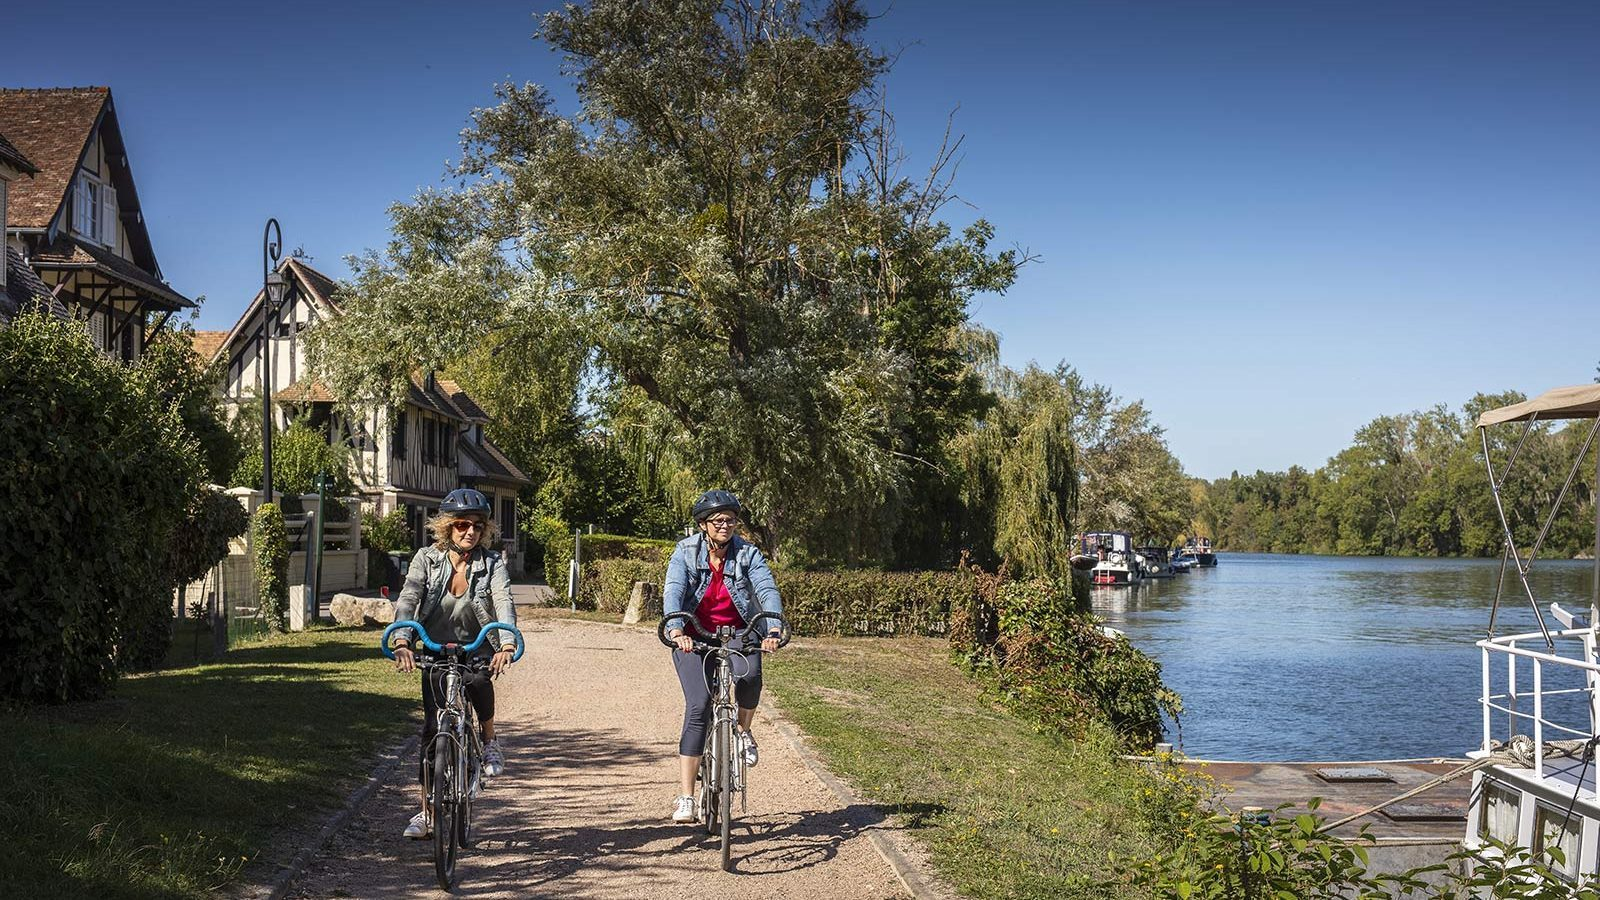 You'll soon be able to cycle from Paris to the seaside, thanks to a new bike path